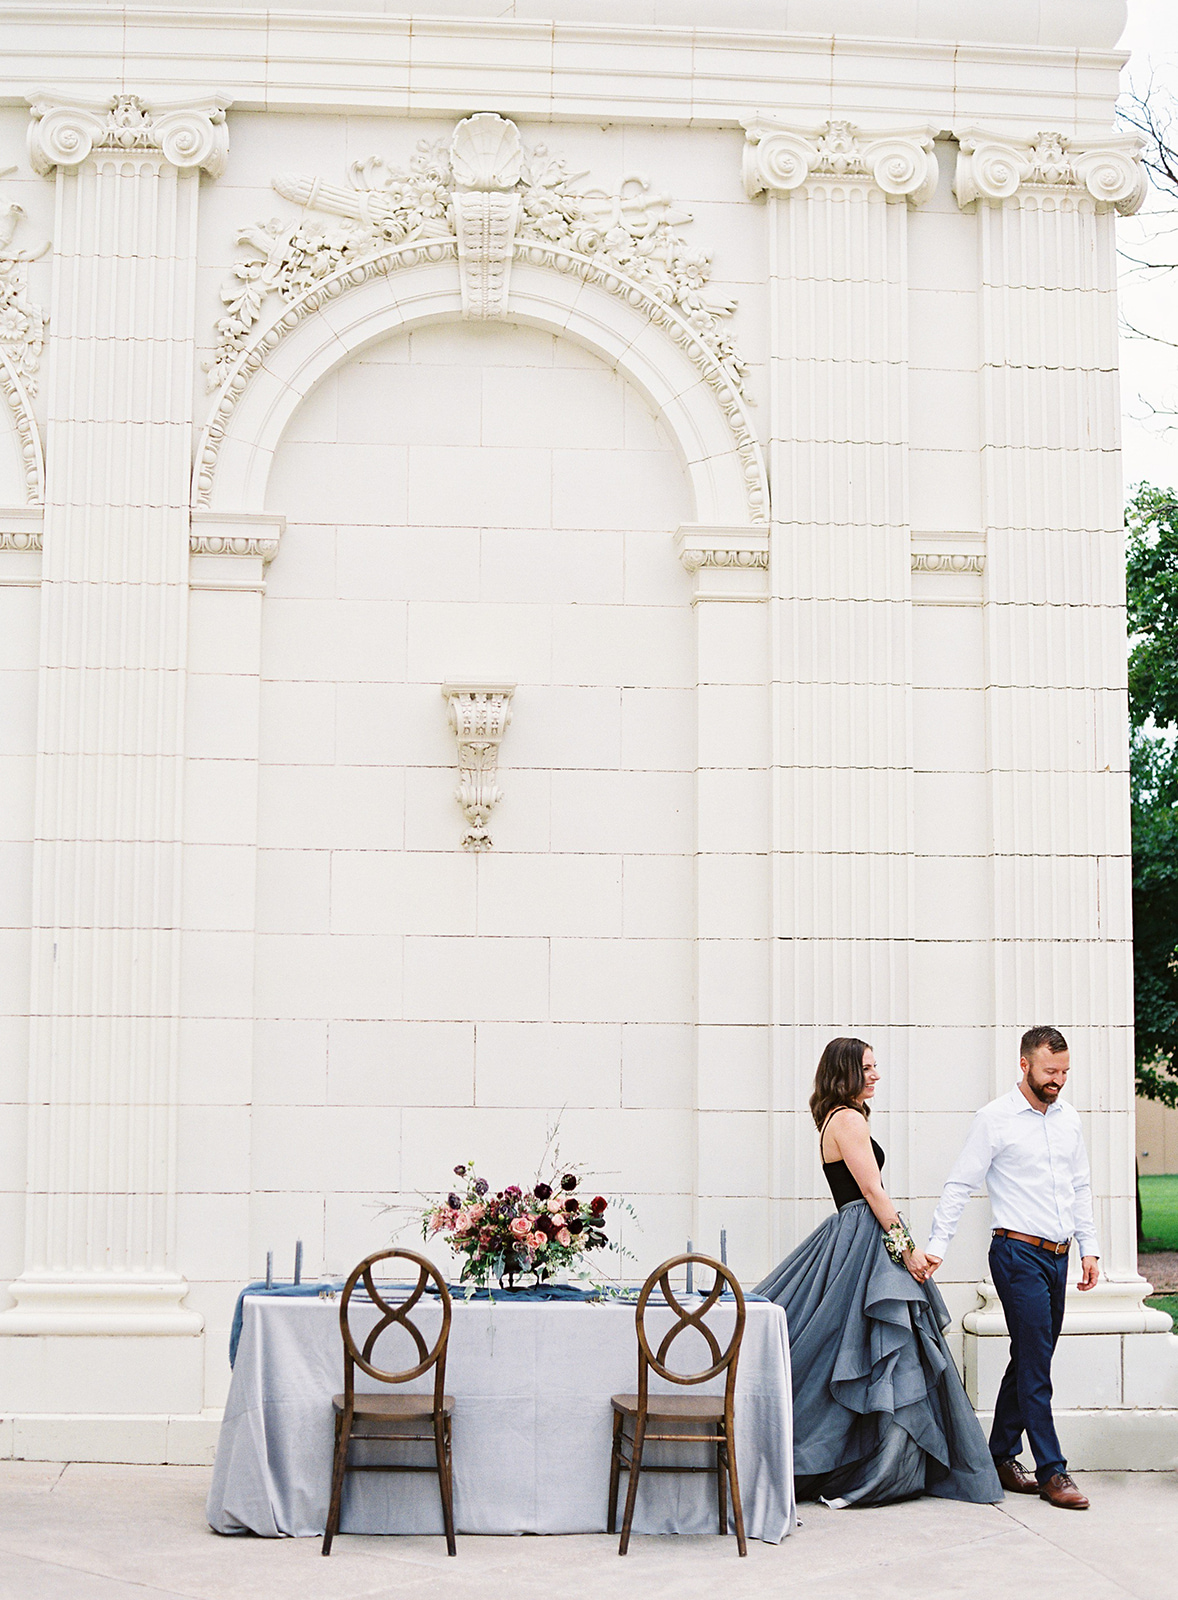 Casey and Andrew Engagement-Carrie King Photographer-161.jpg